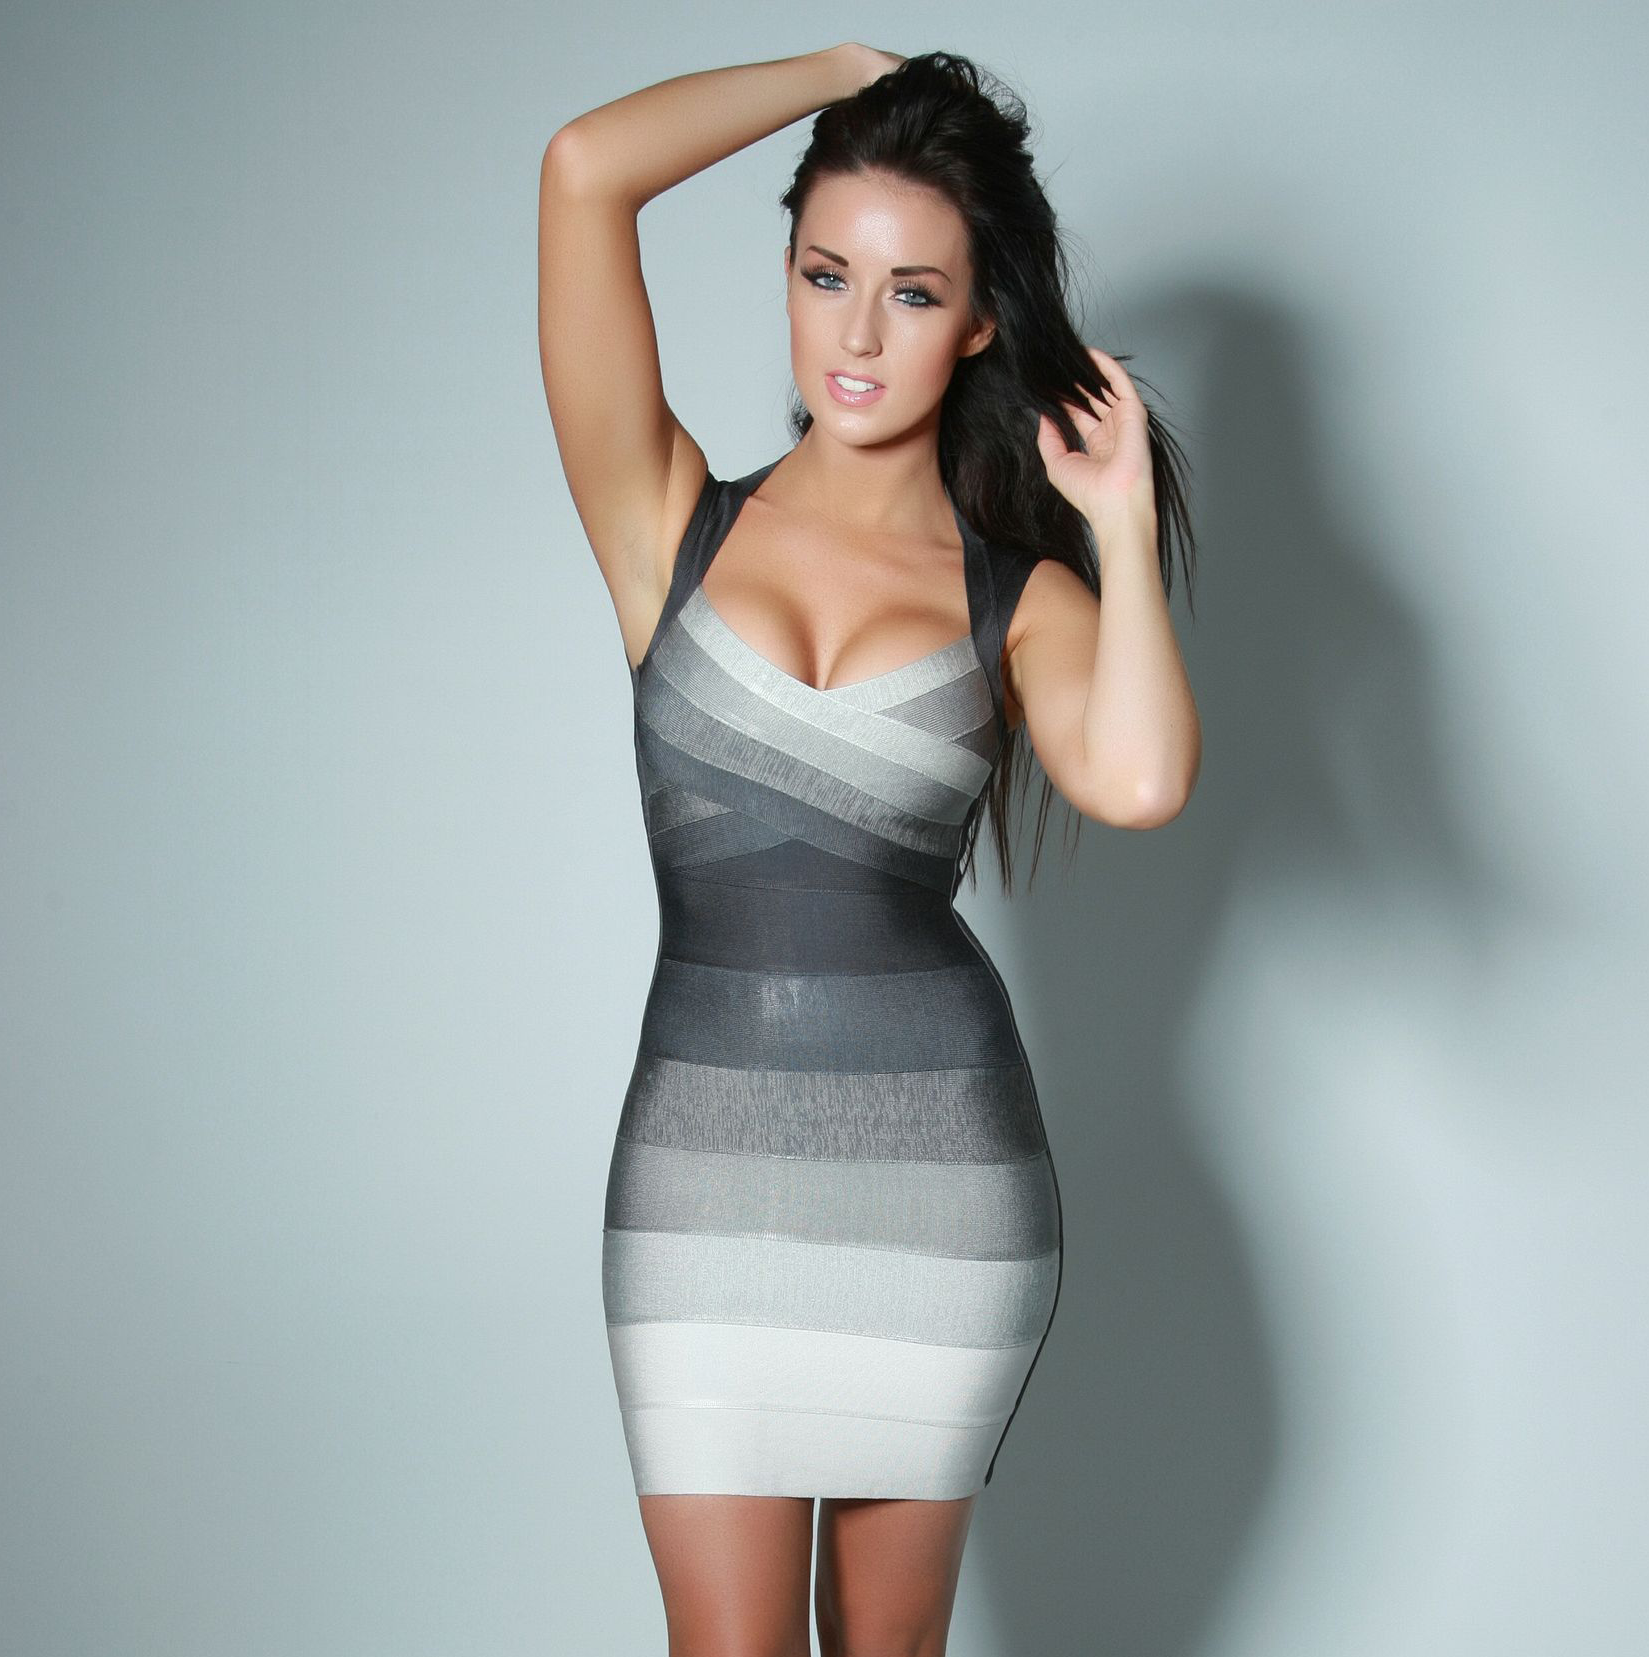 bandage dresses | Home / Bandage Dress / BLACK AND GREY BANDAGE ...